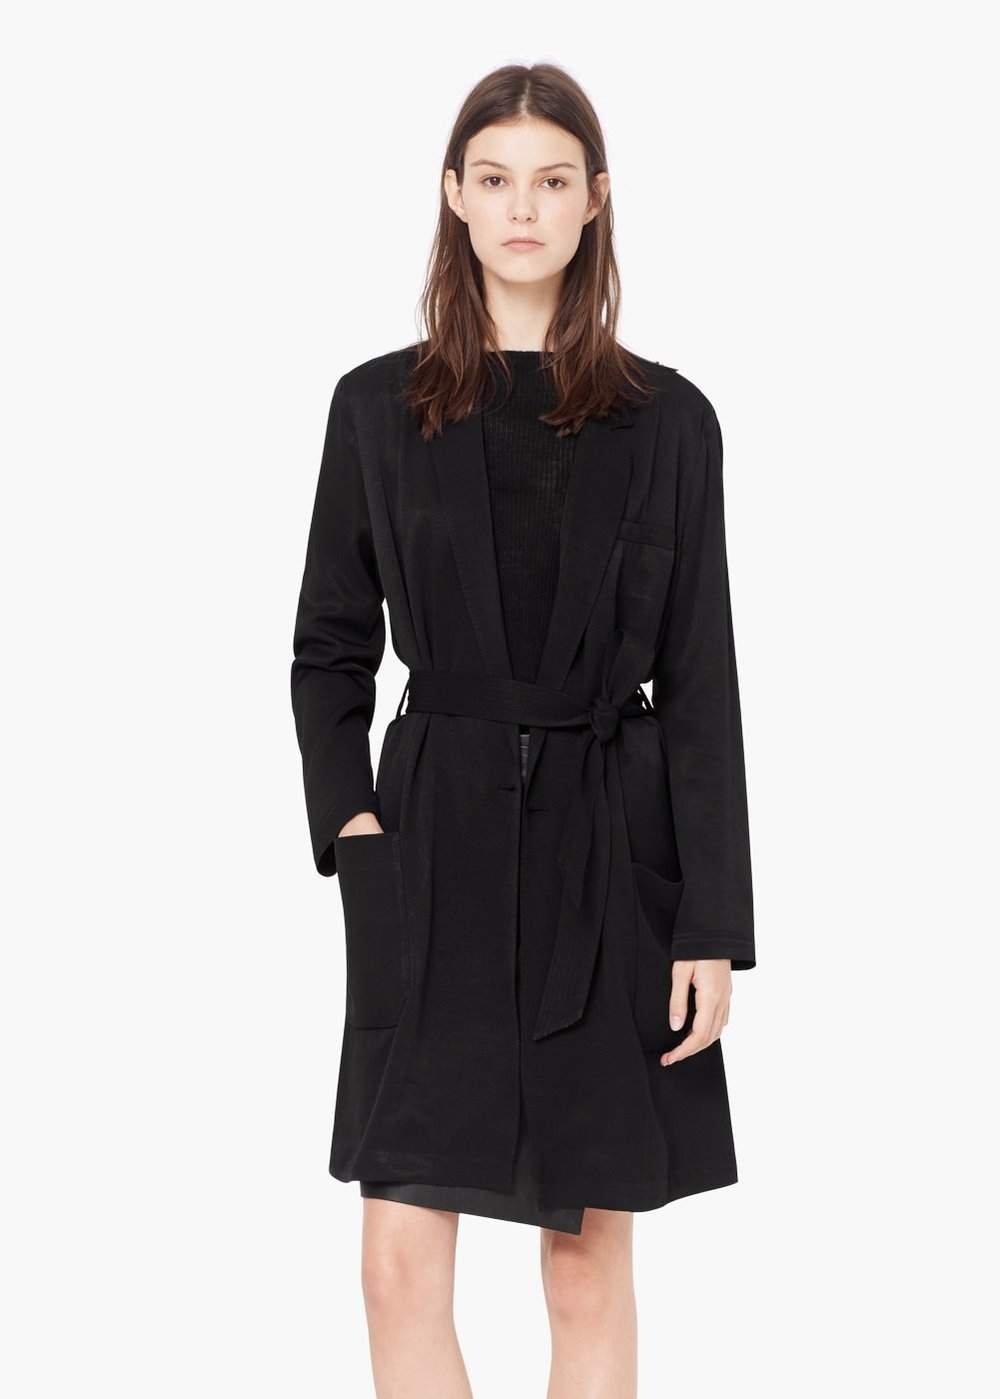 cb69ad51dc5b8 If you re shaped like an apple  Choose structured or belted coats for a  sleek look. A perfect example is the classic trench coat